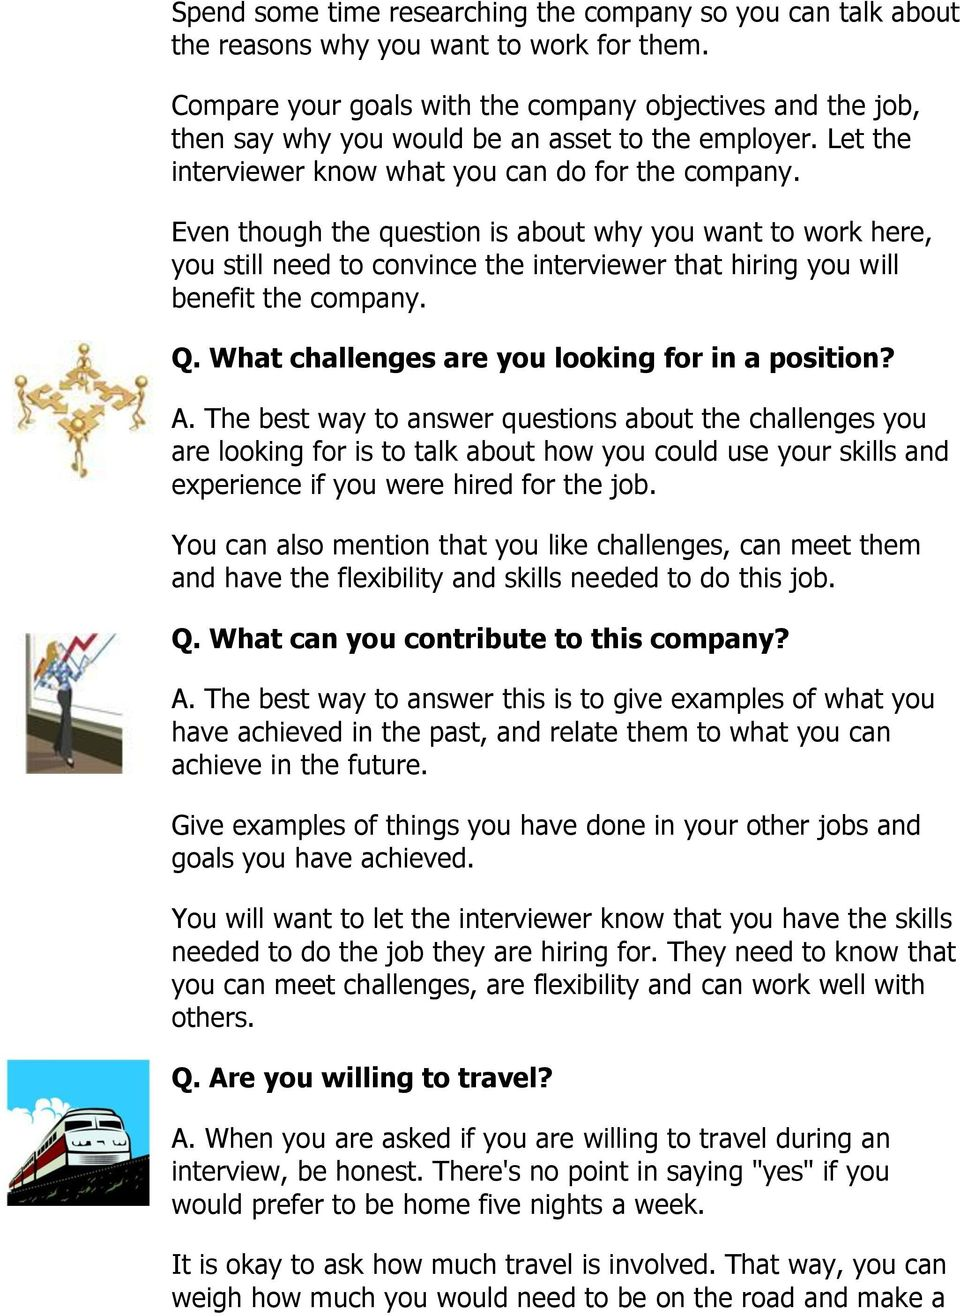 Even though the question is about why you want to work here, you still need to convince the interviewer that hiring you will benefit the company. Q. What challenges are you looking for in a position?